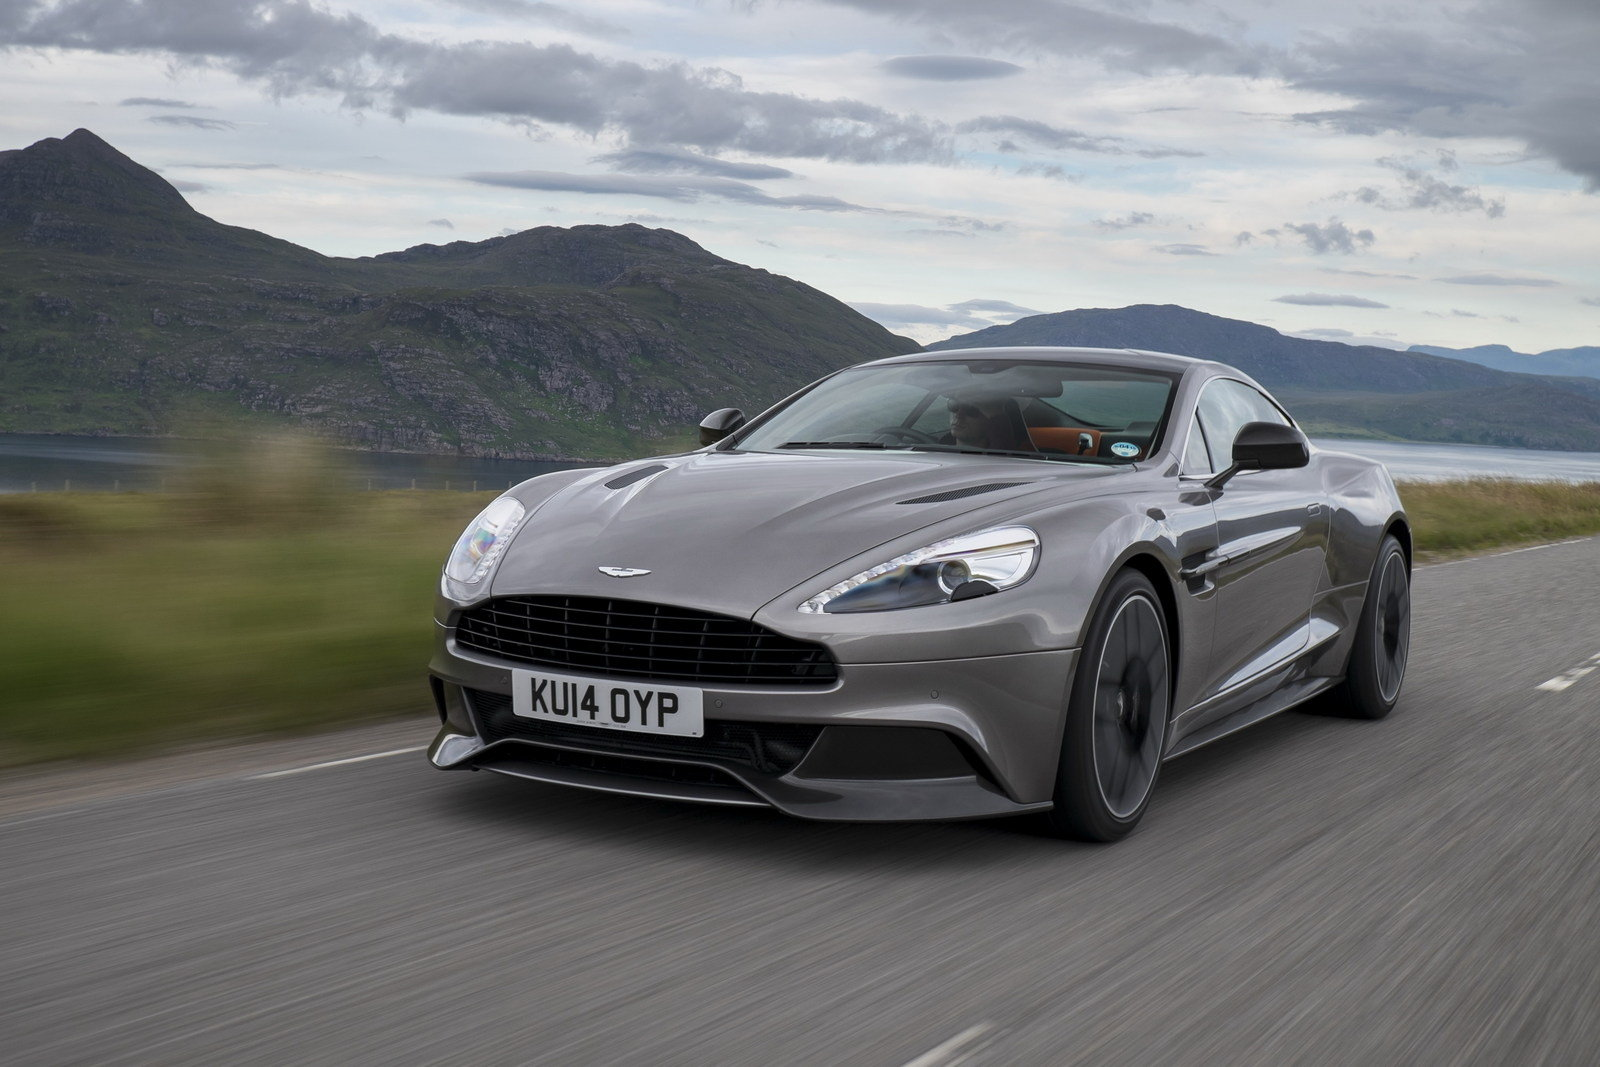 Aston Martin Vanquish Latest News Reviews Specifications Prices Photos And Videos Top Speed